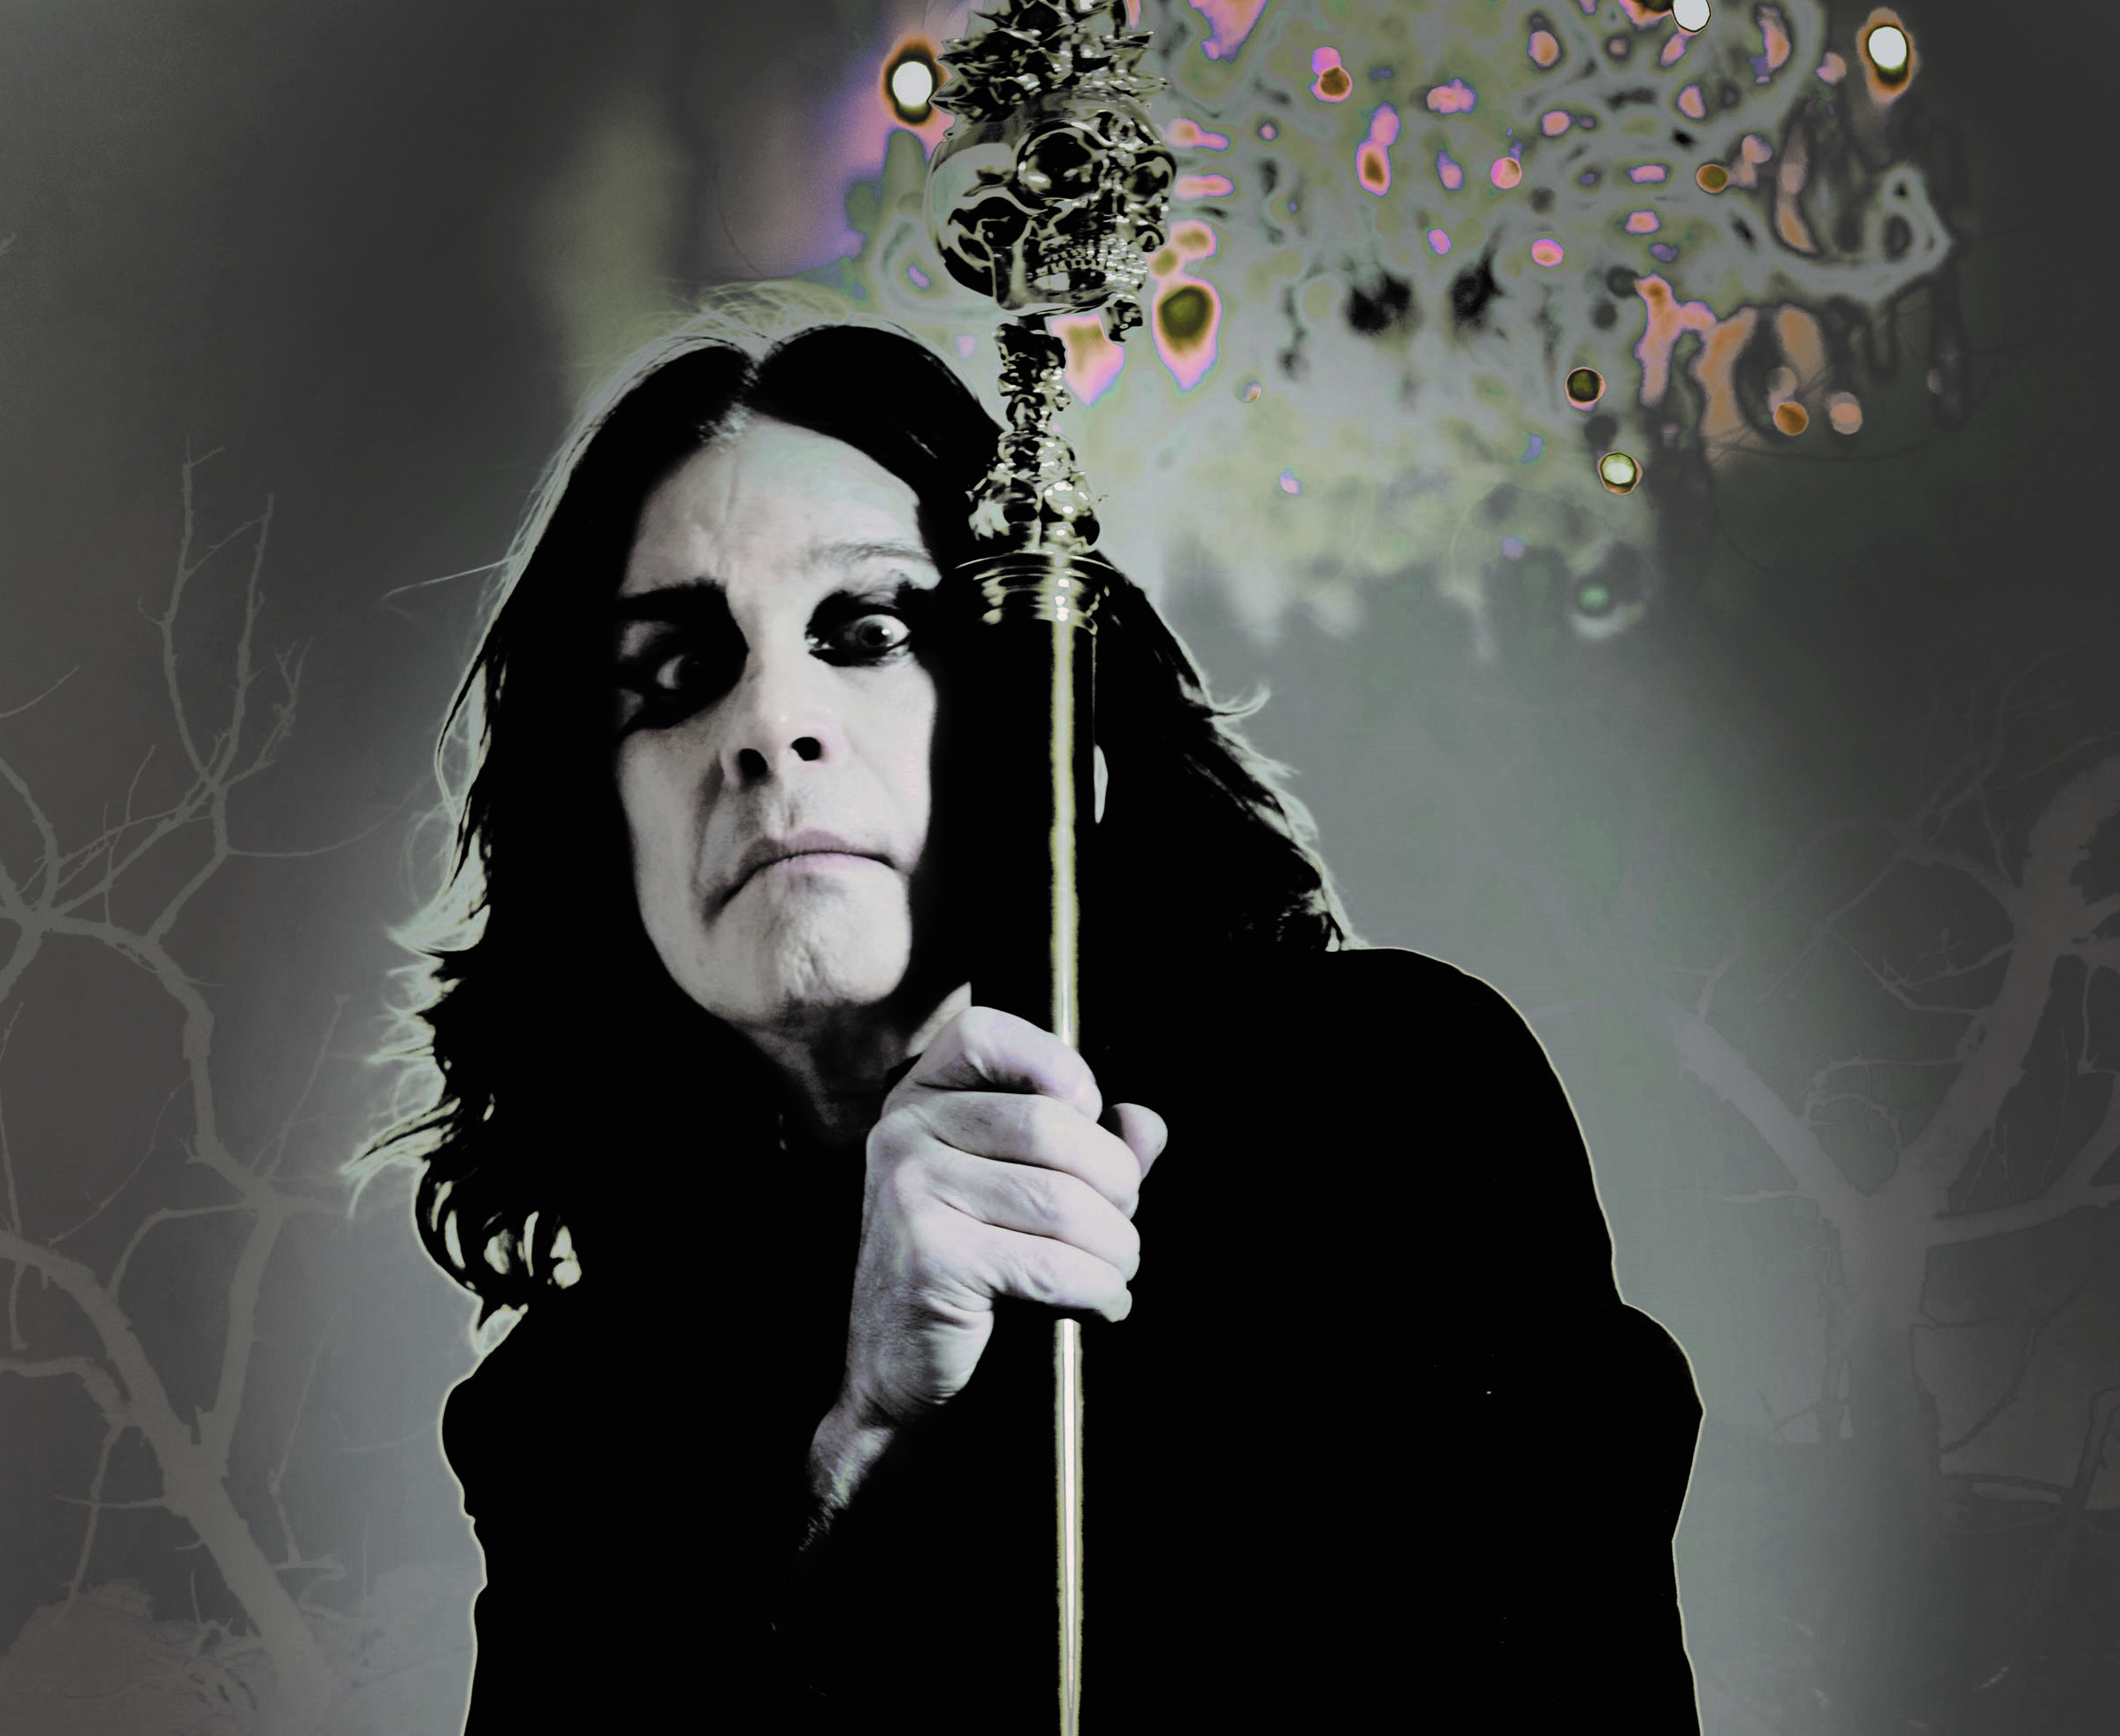 Ozzy Osbourne Has Been Diagnosed with Parkinson's Disease